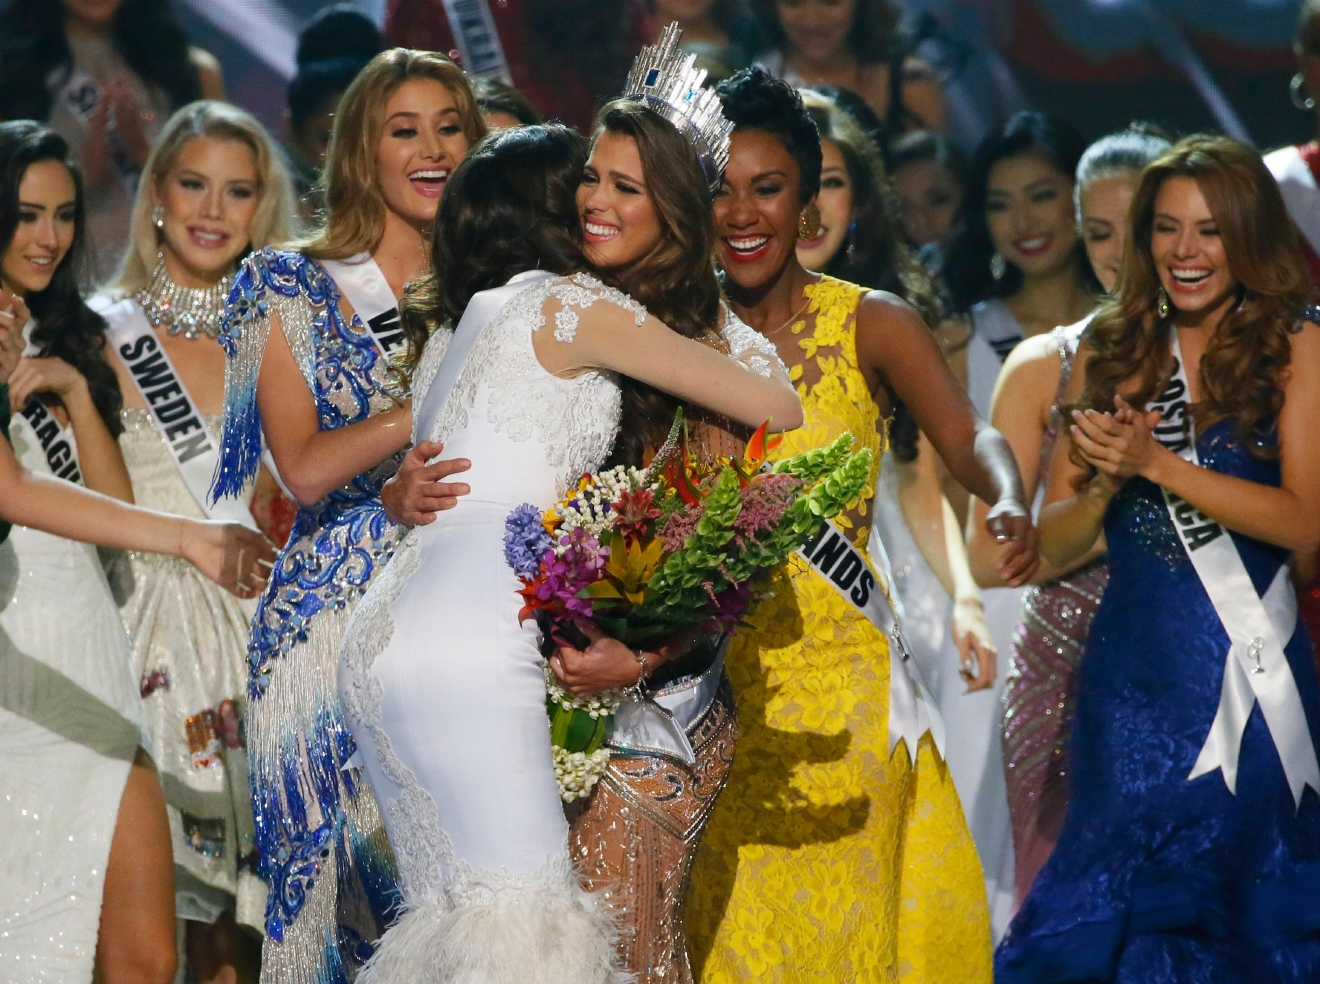 Iris Mittenaere, center right, of France is congratulated by fellow contestants shortly after being proclaimed the Miss Universe 2016 in coronation Monday, Jan. 30, 2017, at the Mall of Asia in suburban Pasay city, south of Manila, Philippines. (AP Photo/Bullit Marquez)